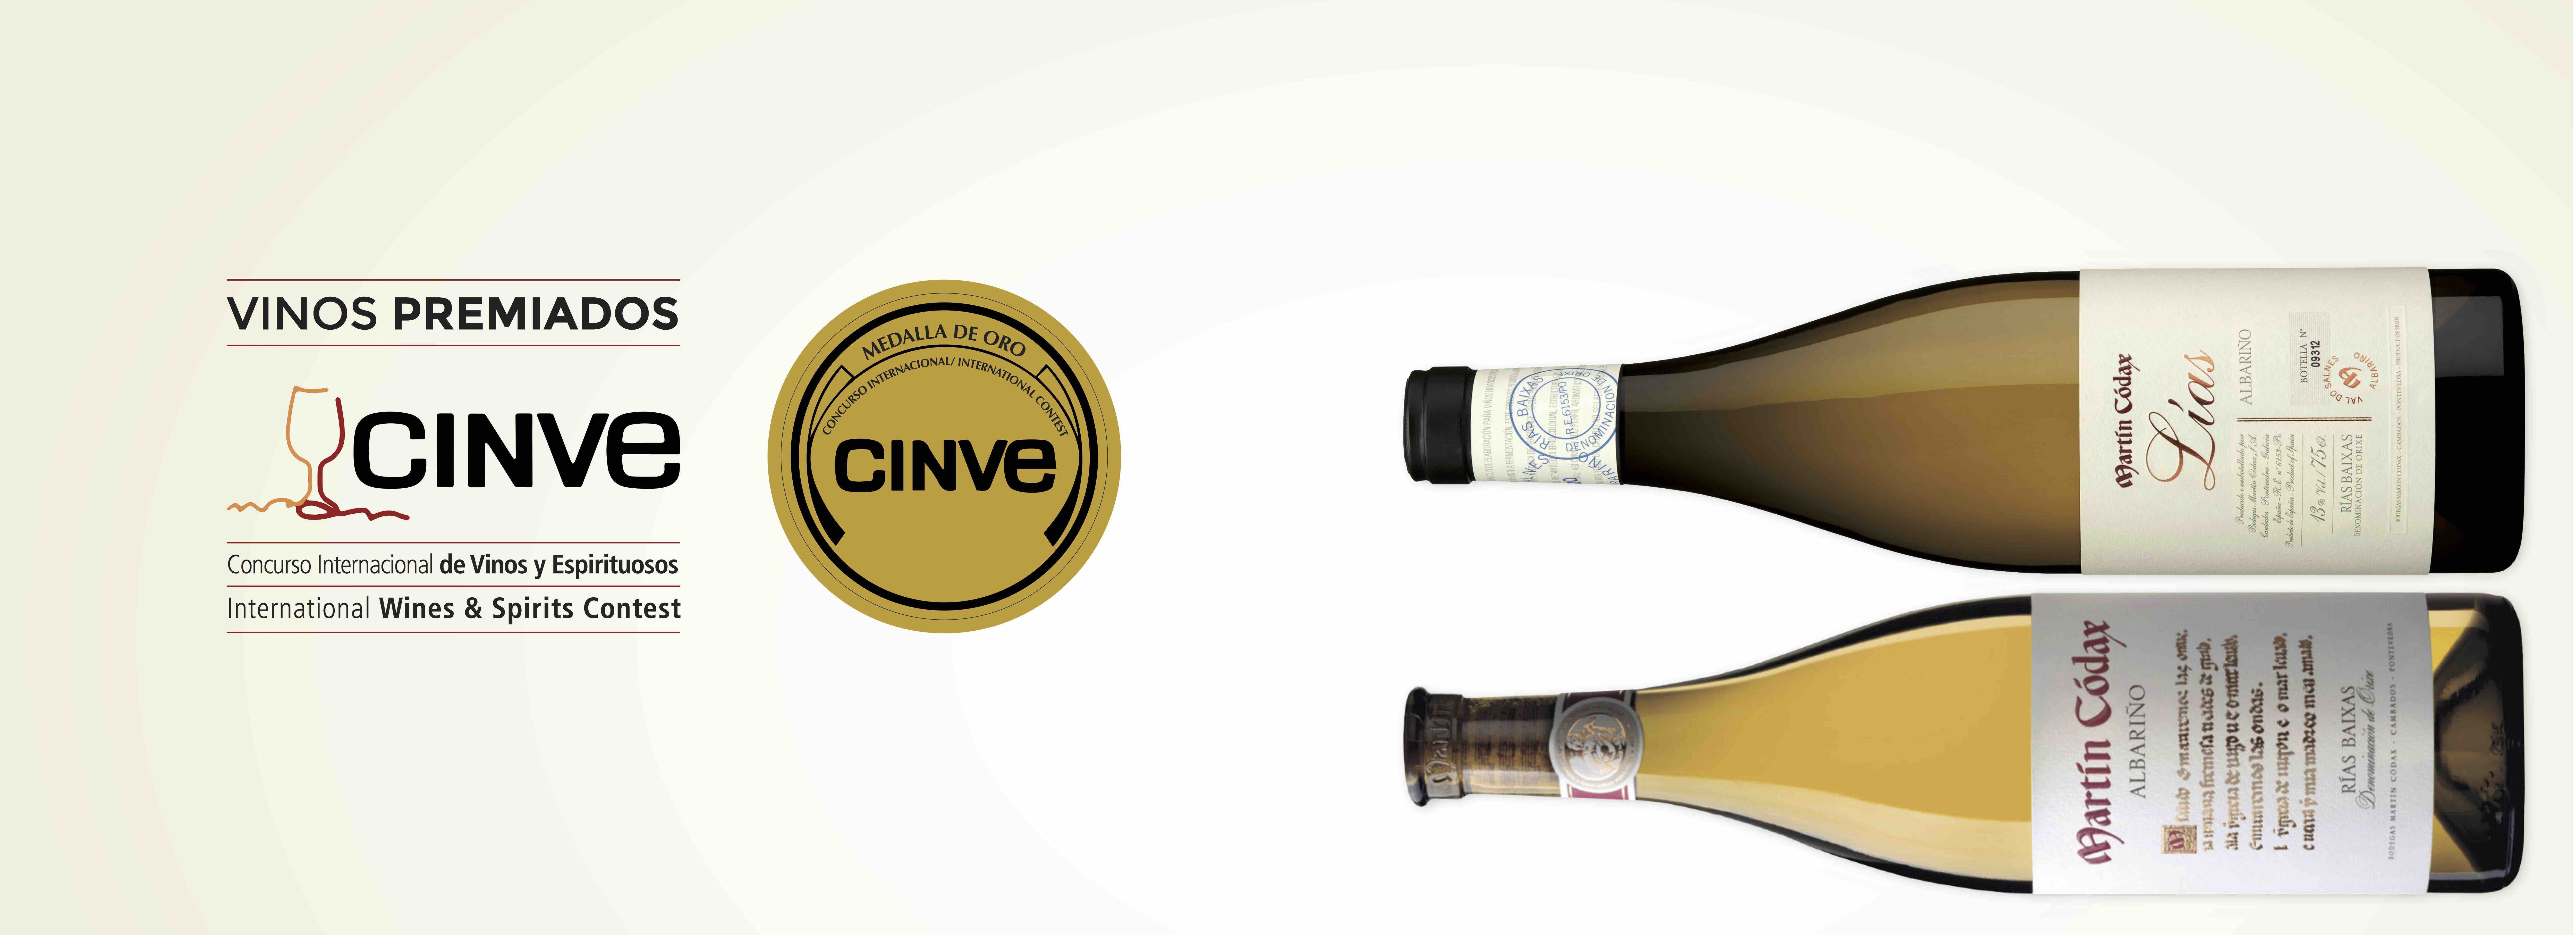 Gold medal in Cinve 2016